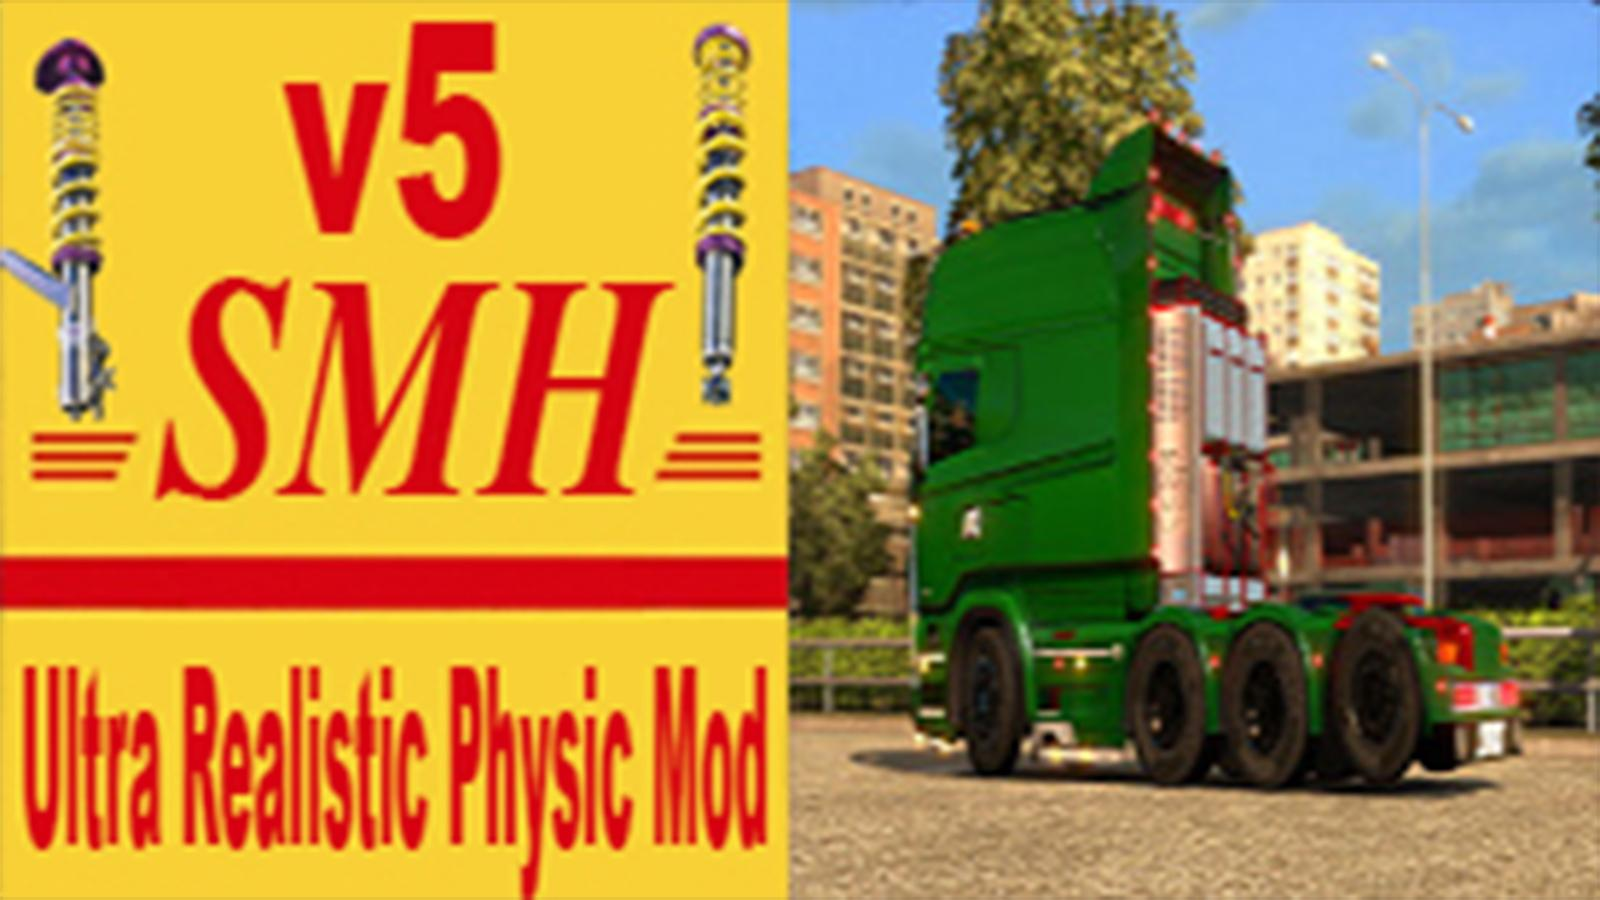 ultra-realistic-physic-mod-v5-works-in-rjl-trucks-1-21-x_2